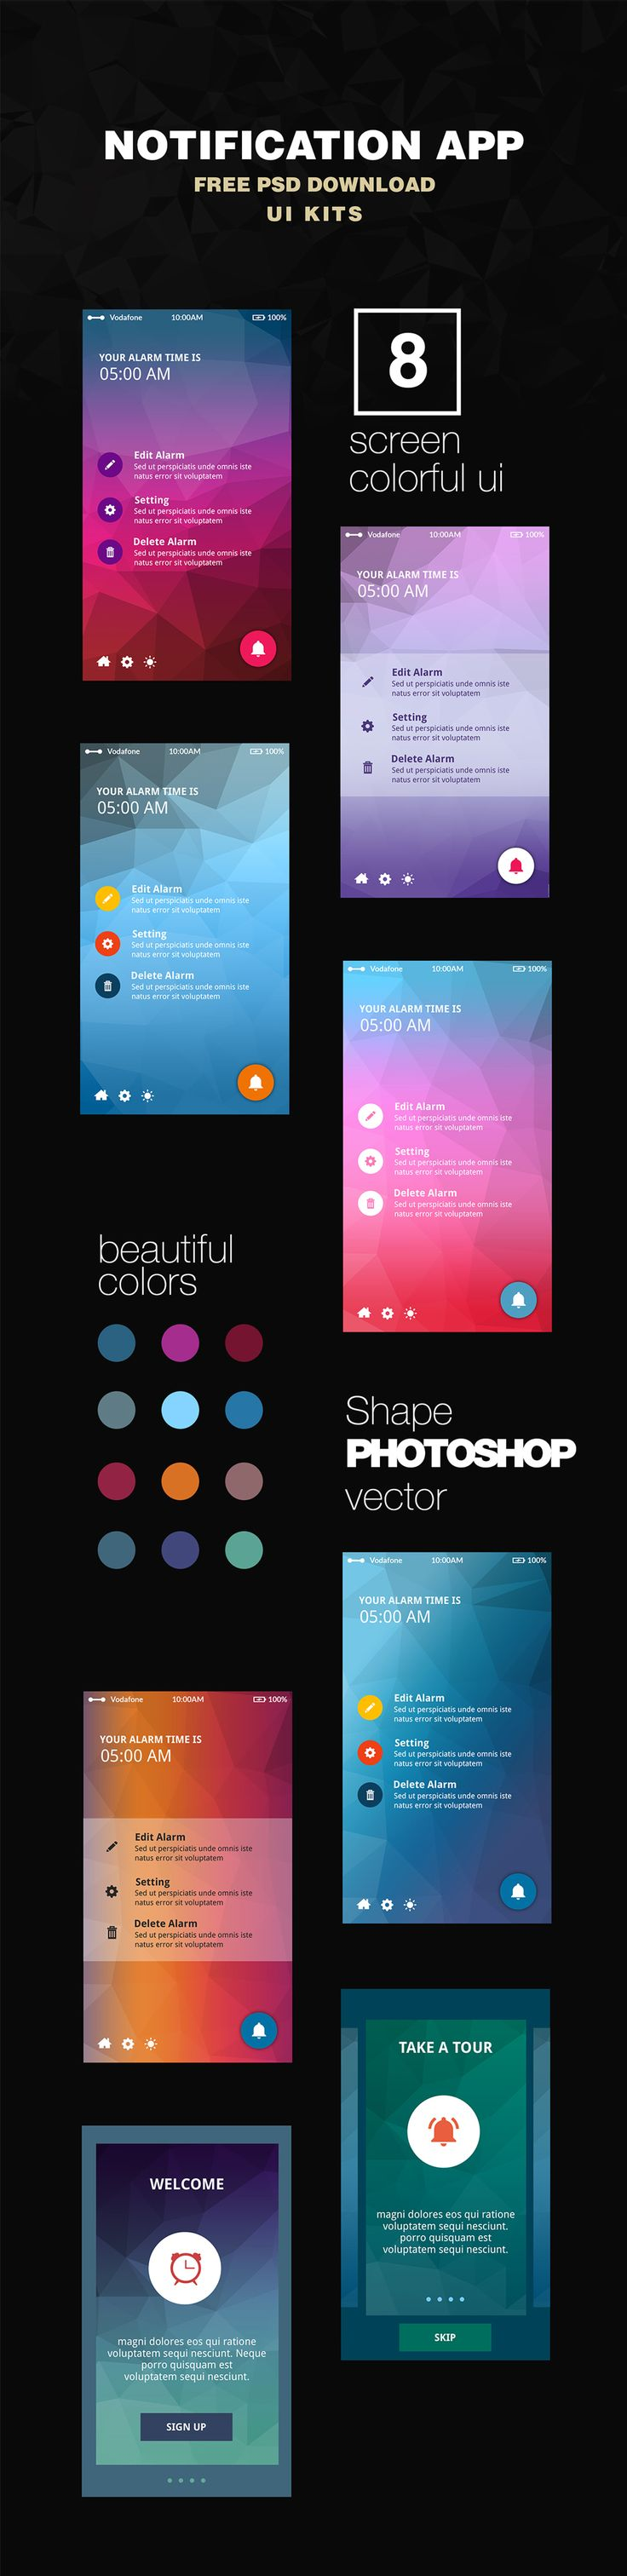 df5b11e667b1cae407b7b43664ba5d6f--notification-app-appdesign Template App Design Android on home screens, different utility ios, card view background, menu concept,